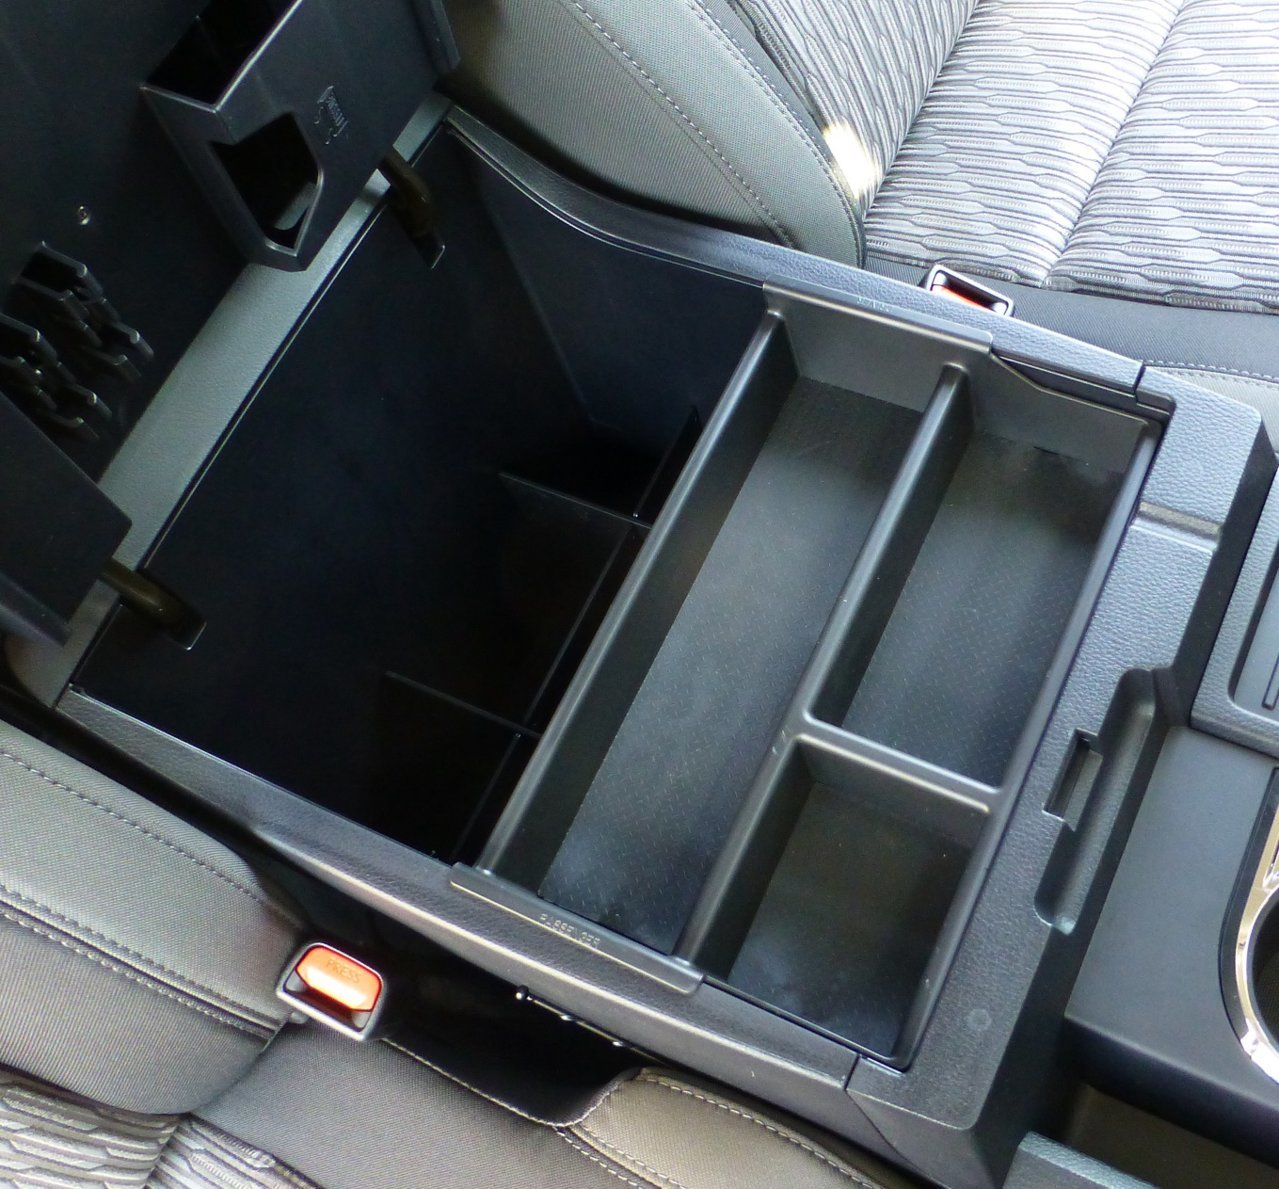 Tundra Center Console Tray From Salex Organizers Toyota